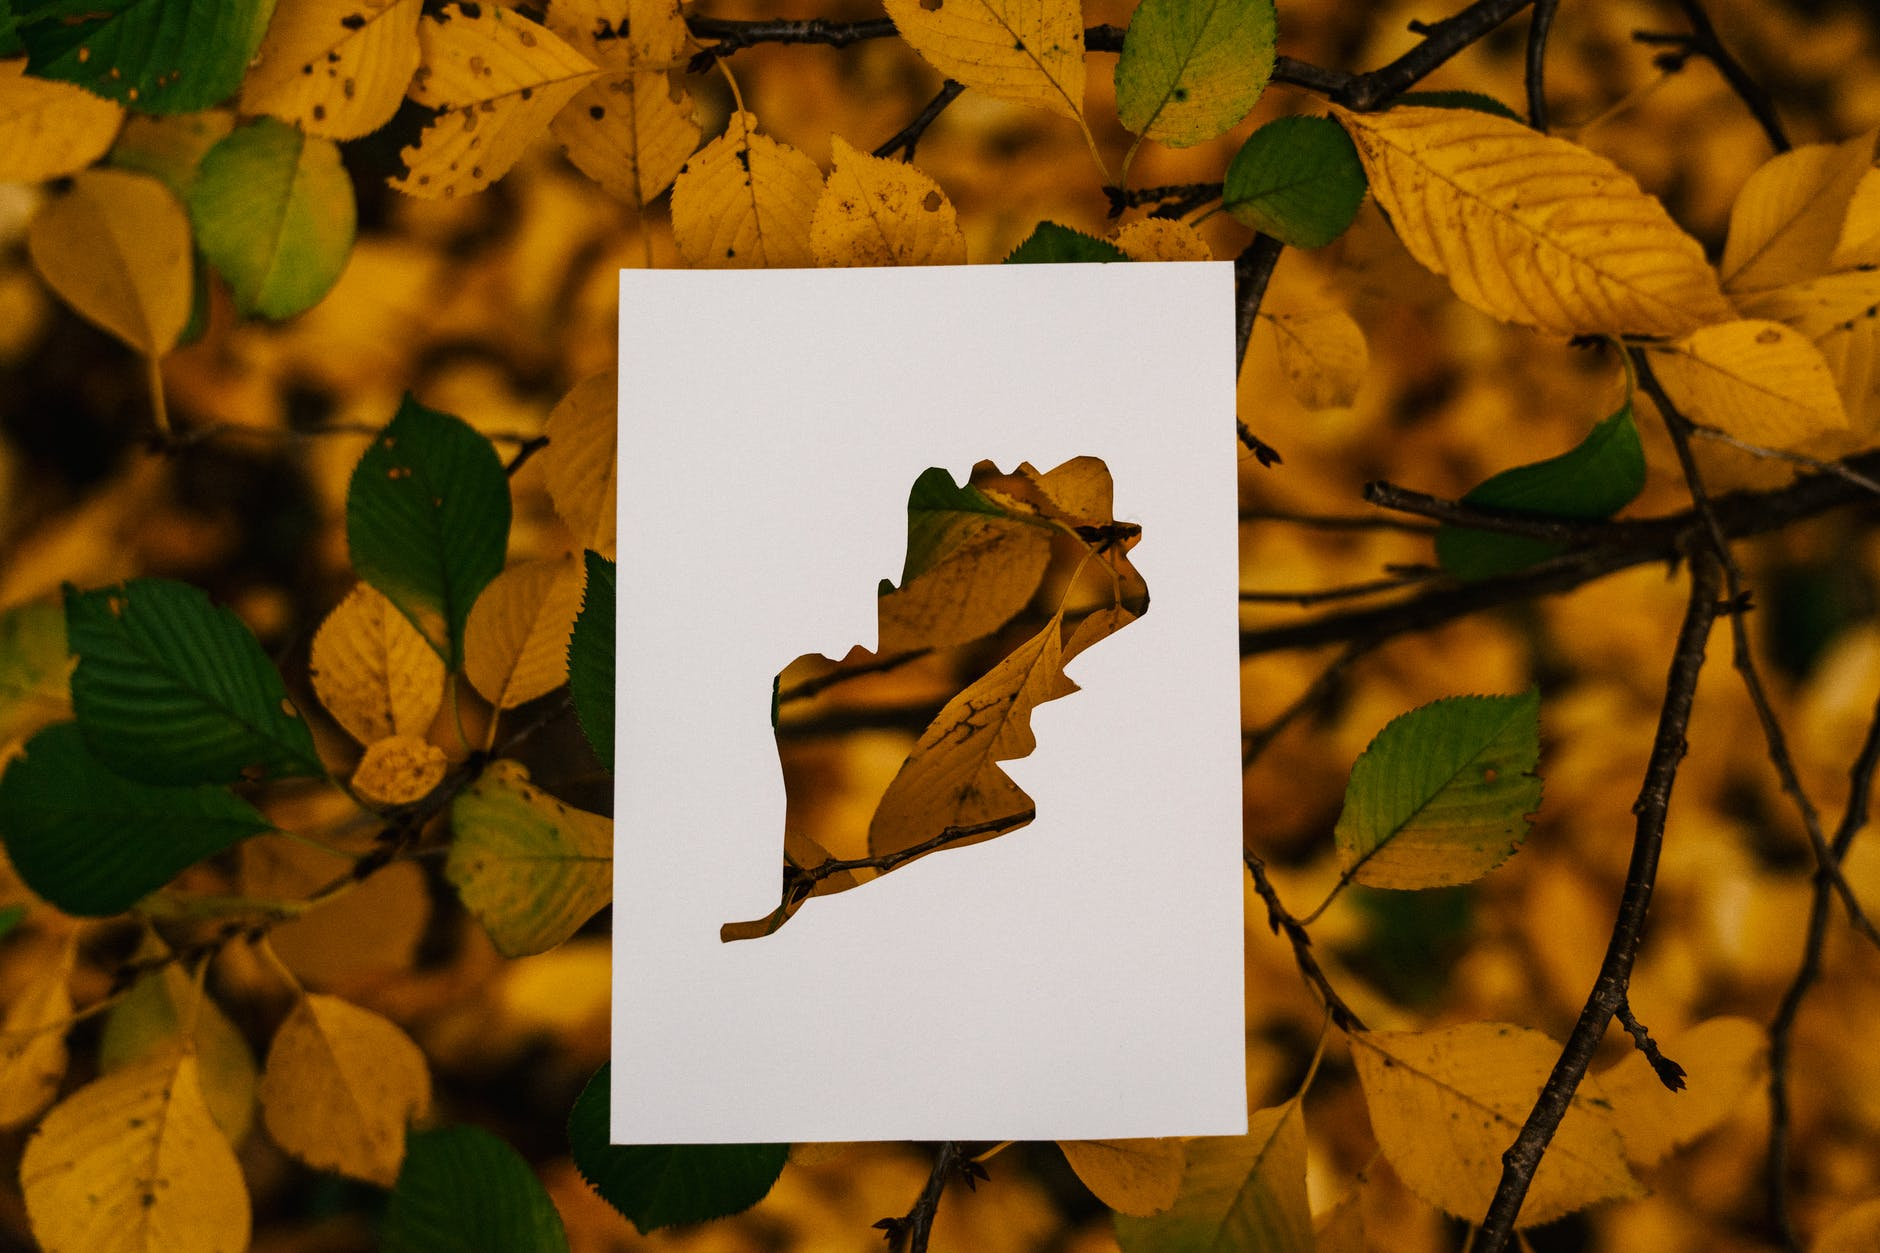 autumn foliage on tree with paper card